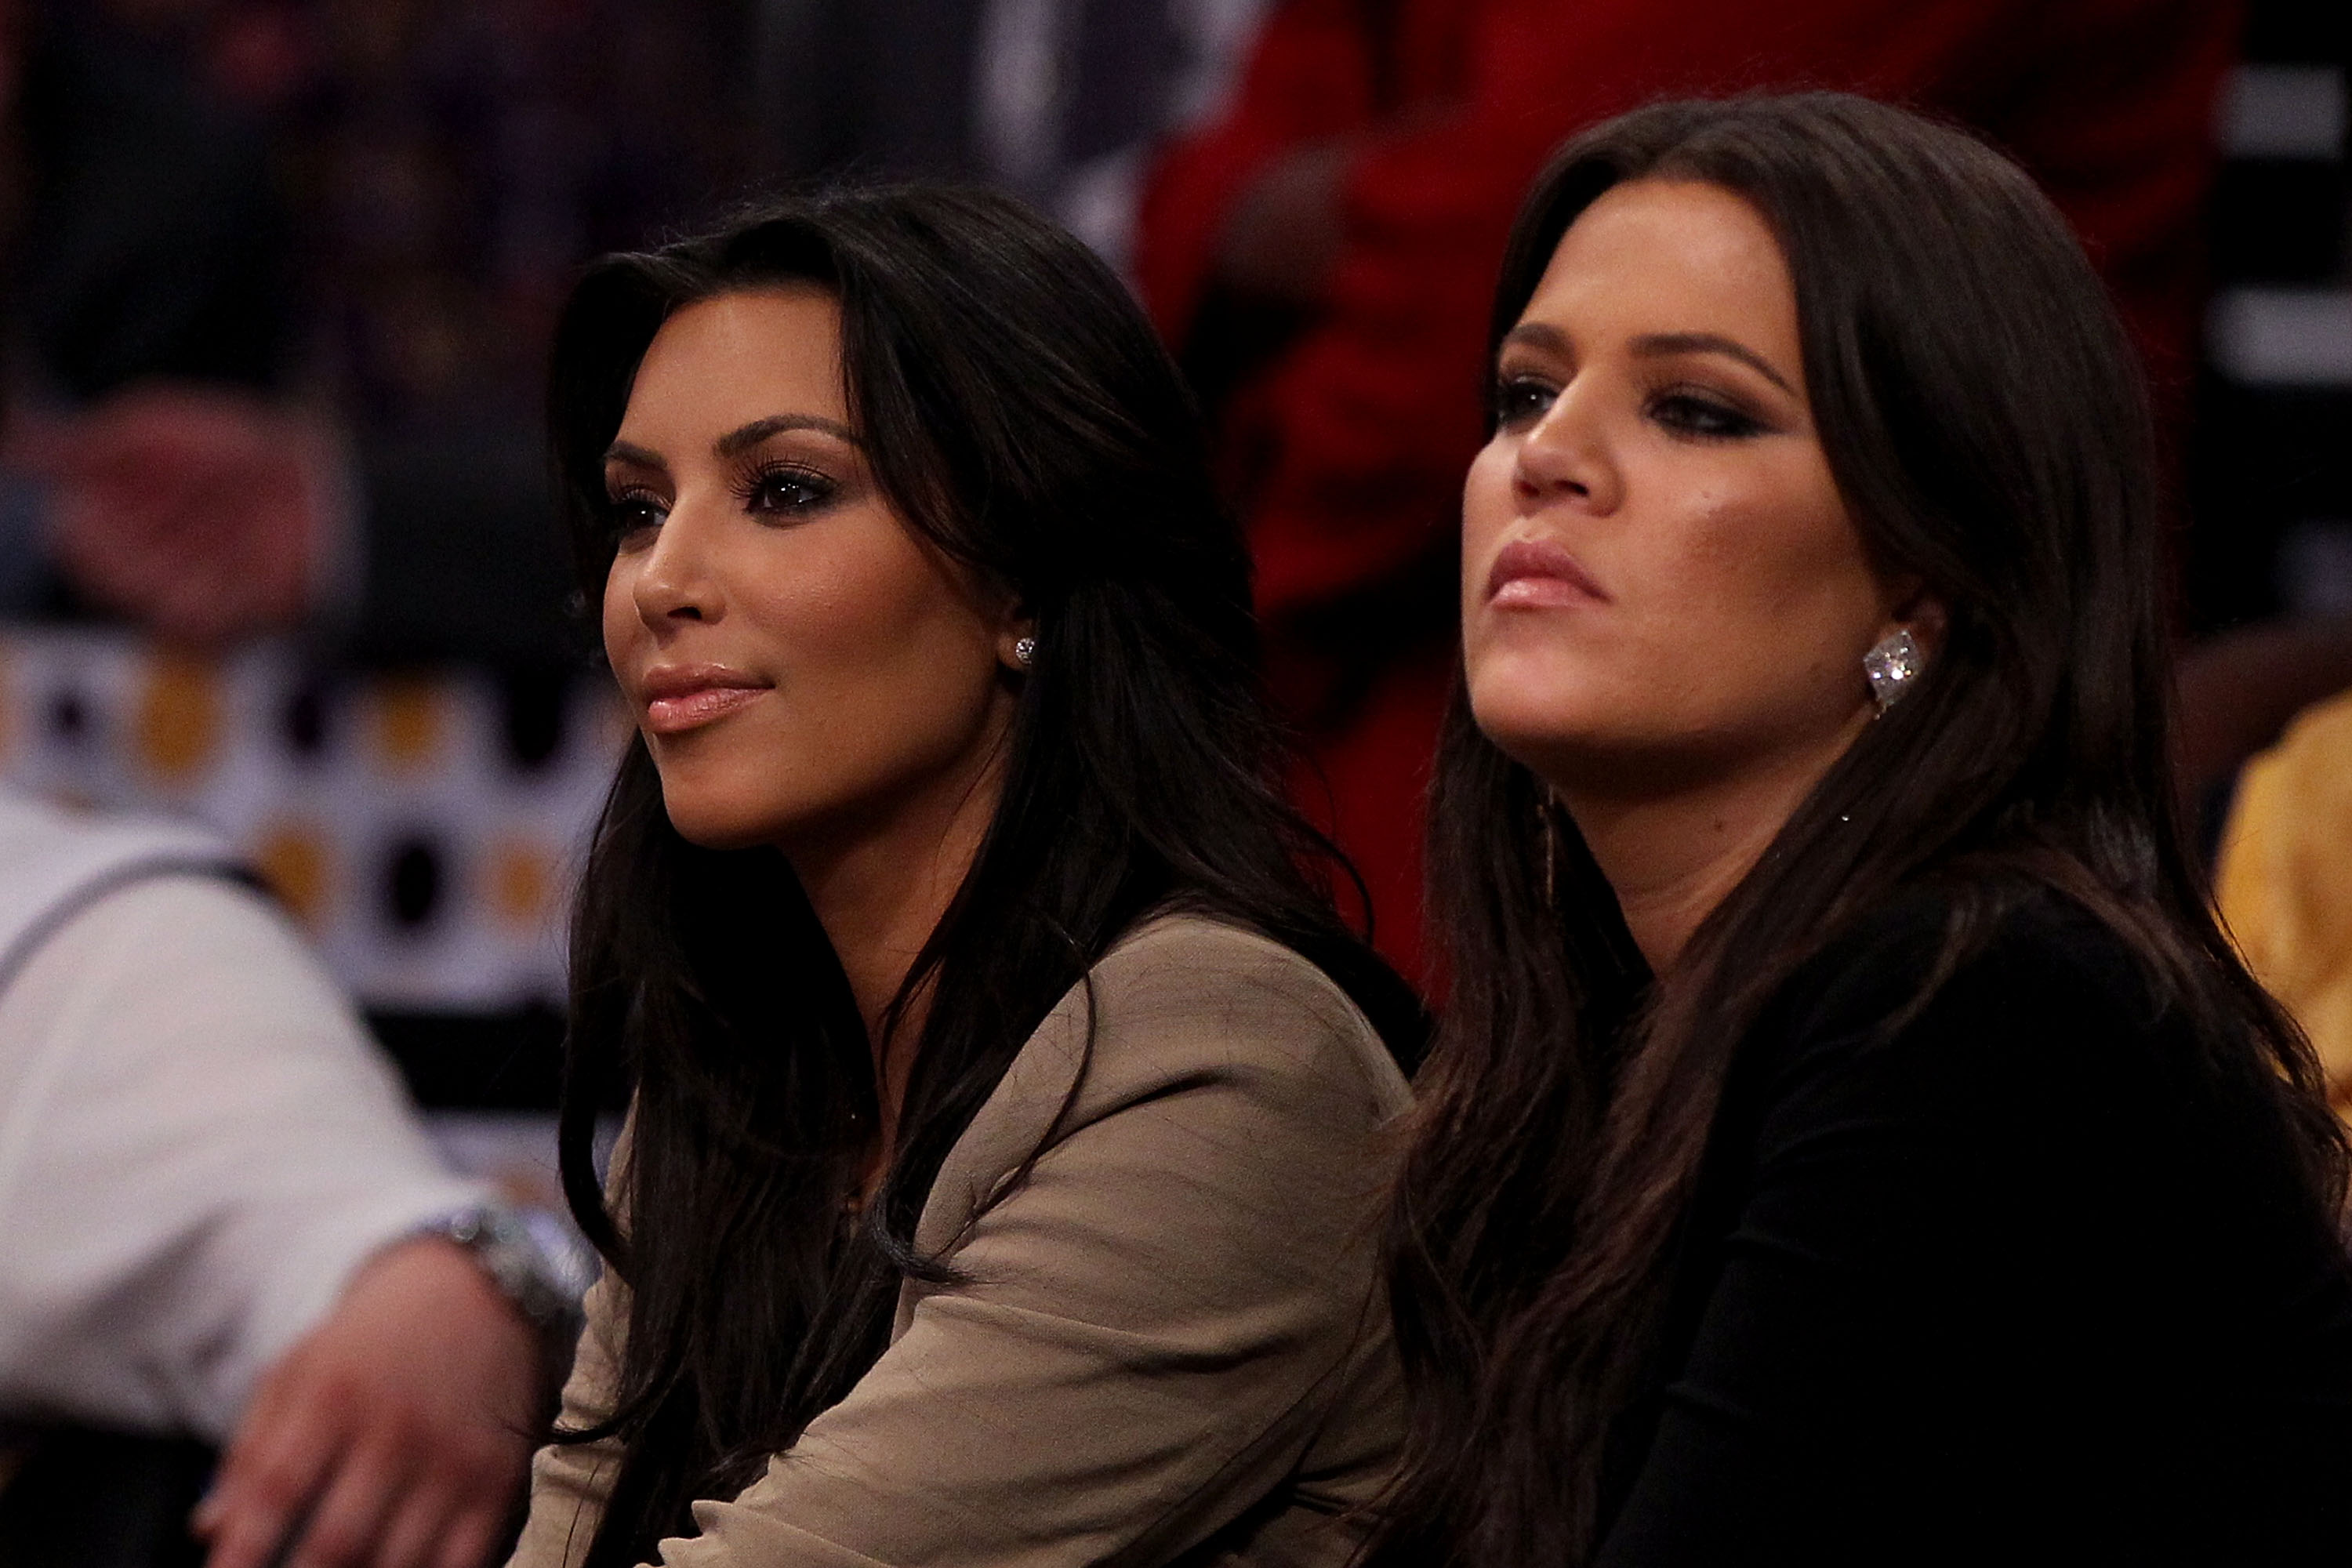 LOS ANGELES, CA - JUNE 17:  (L-R) Kim and Khloe Kardashian sit courtside at Game Seven of the 2010 NBA Finals at Staples Center between the Boston Celtics and the Los Angeles Lakers on June 17, 2010 in Los Angeles, California.  NOTE TO USER: User expressl